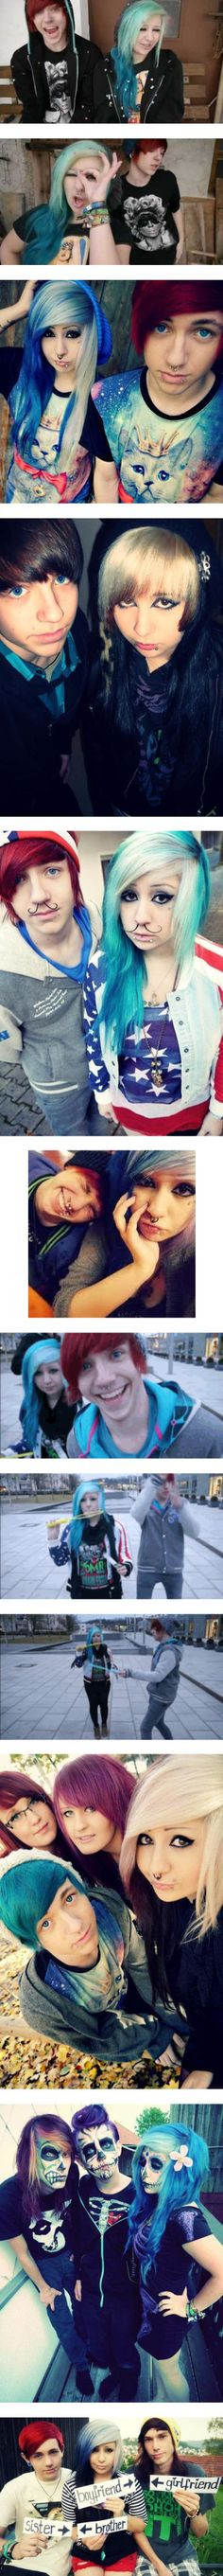 """""""Me and my little bro Maxy"""" by verena-schizophrenia ❤ liked on Polyvore"""